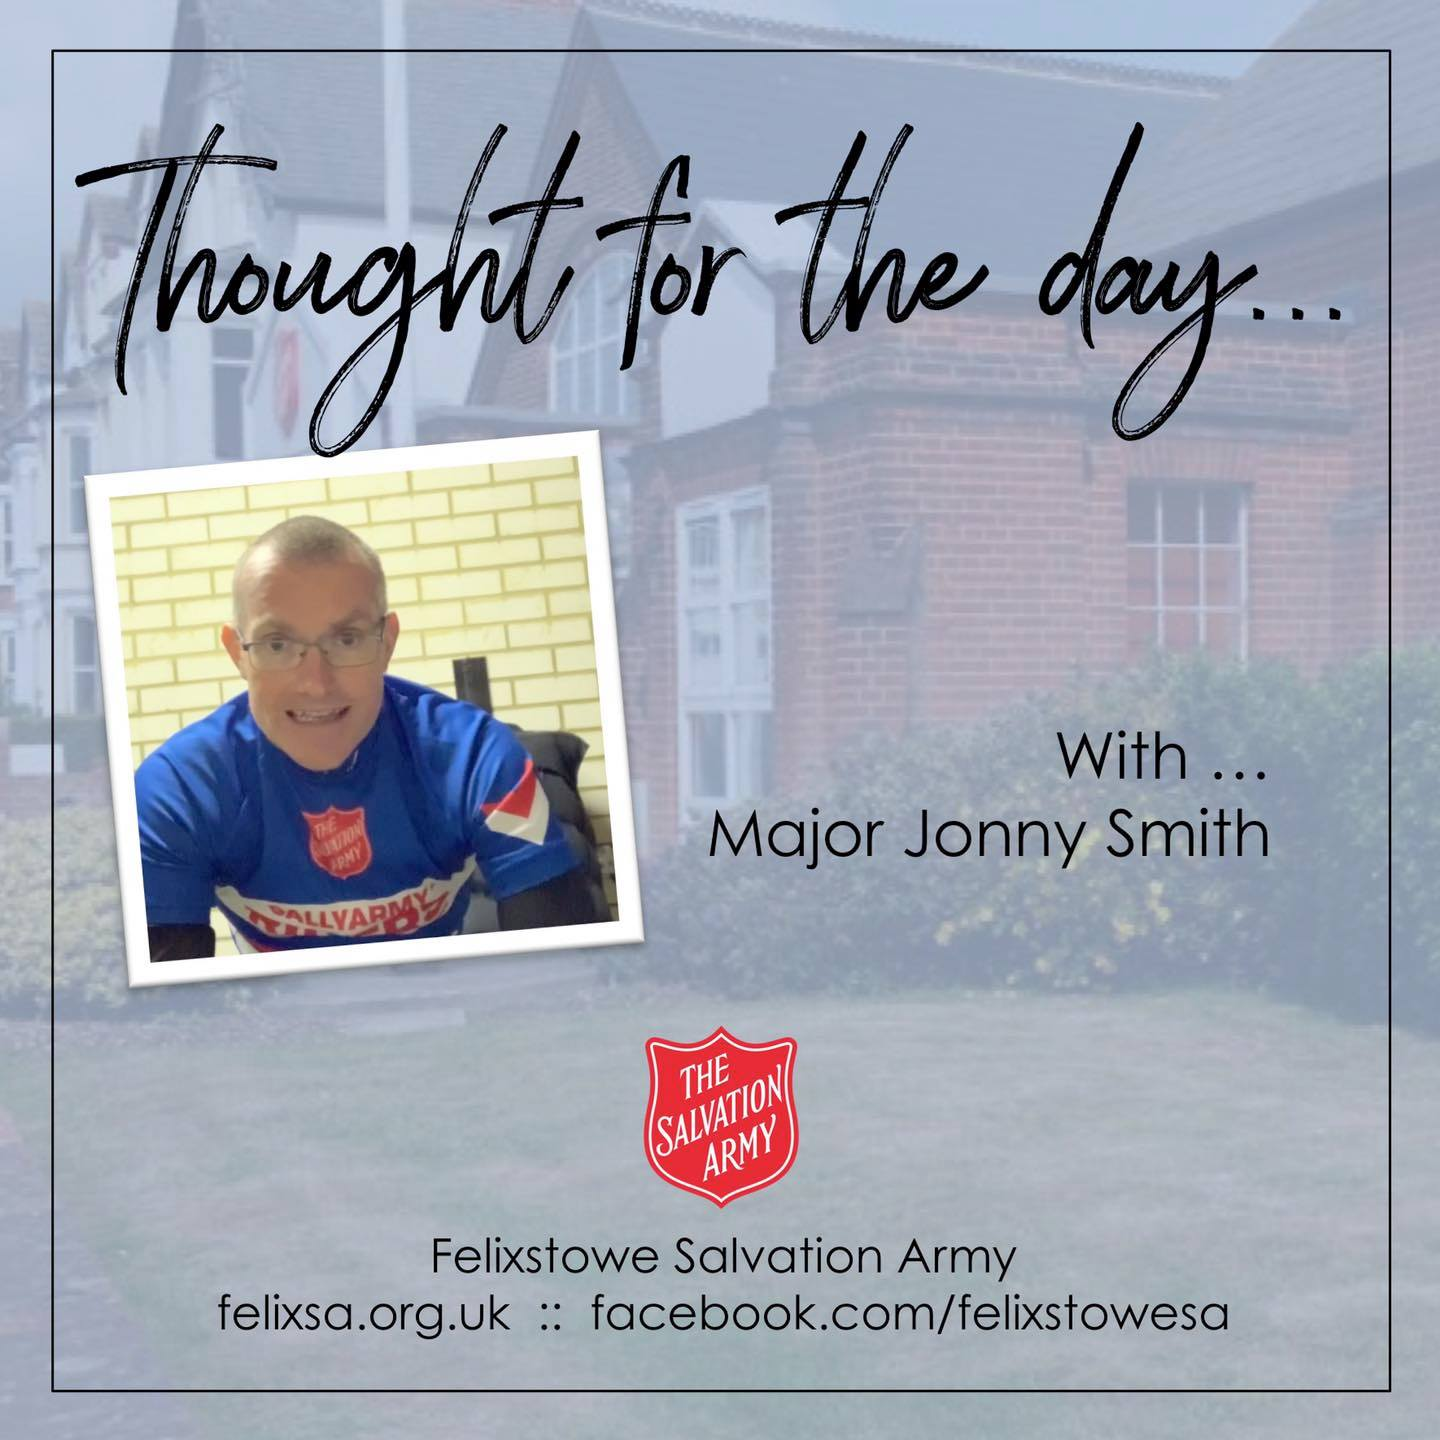 Thought for the Day with Major Jonny Smith